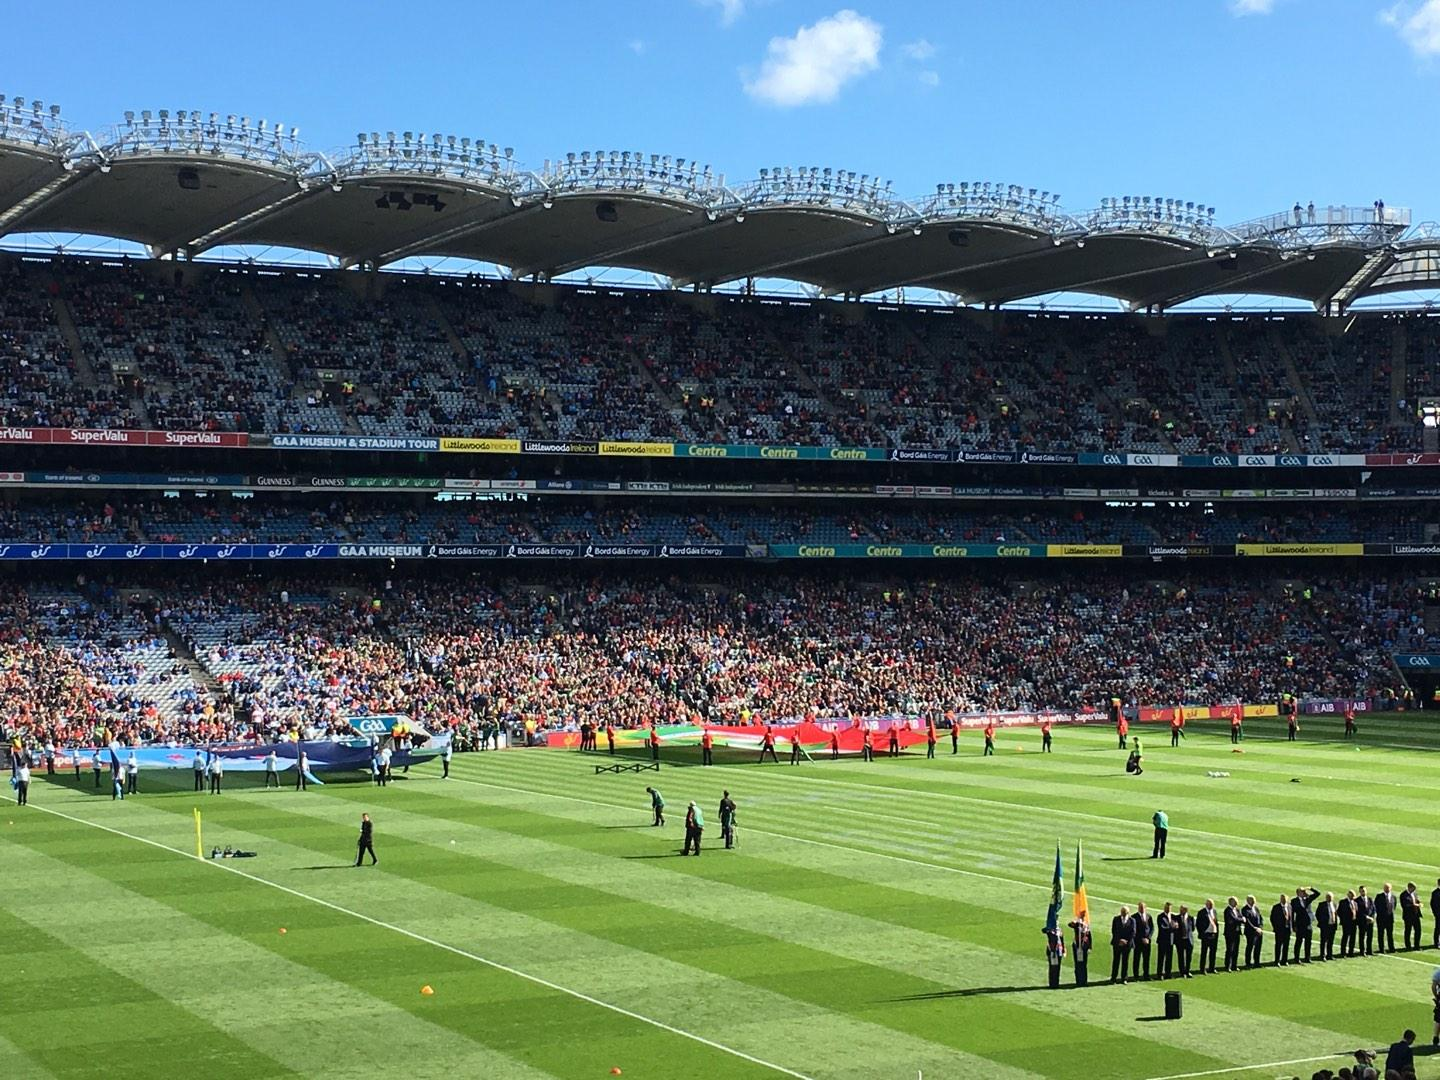 Croke Park Section 335 Row RR Seat 20